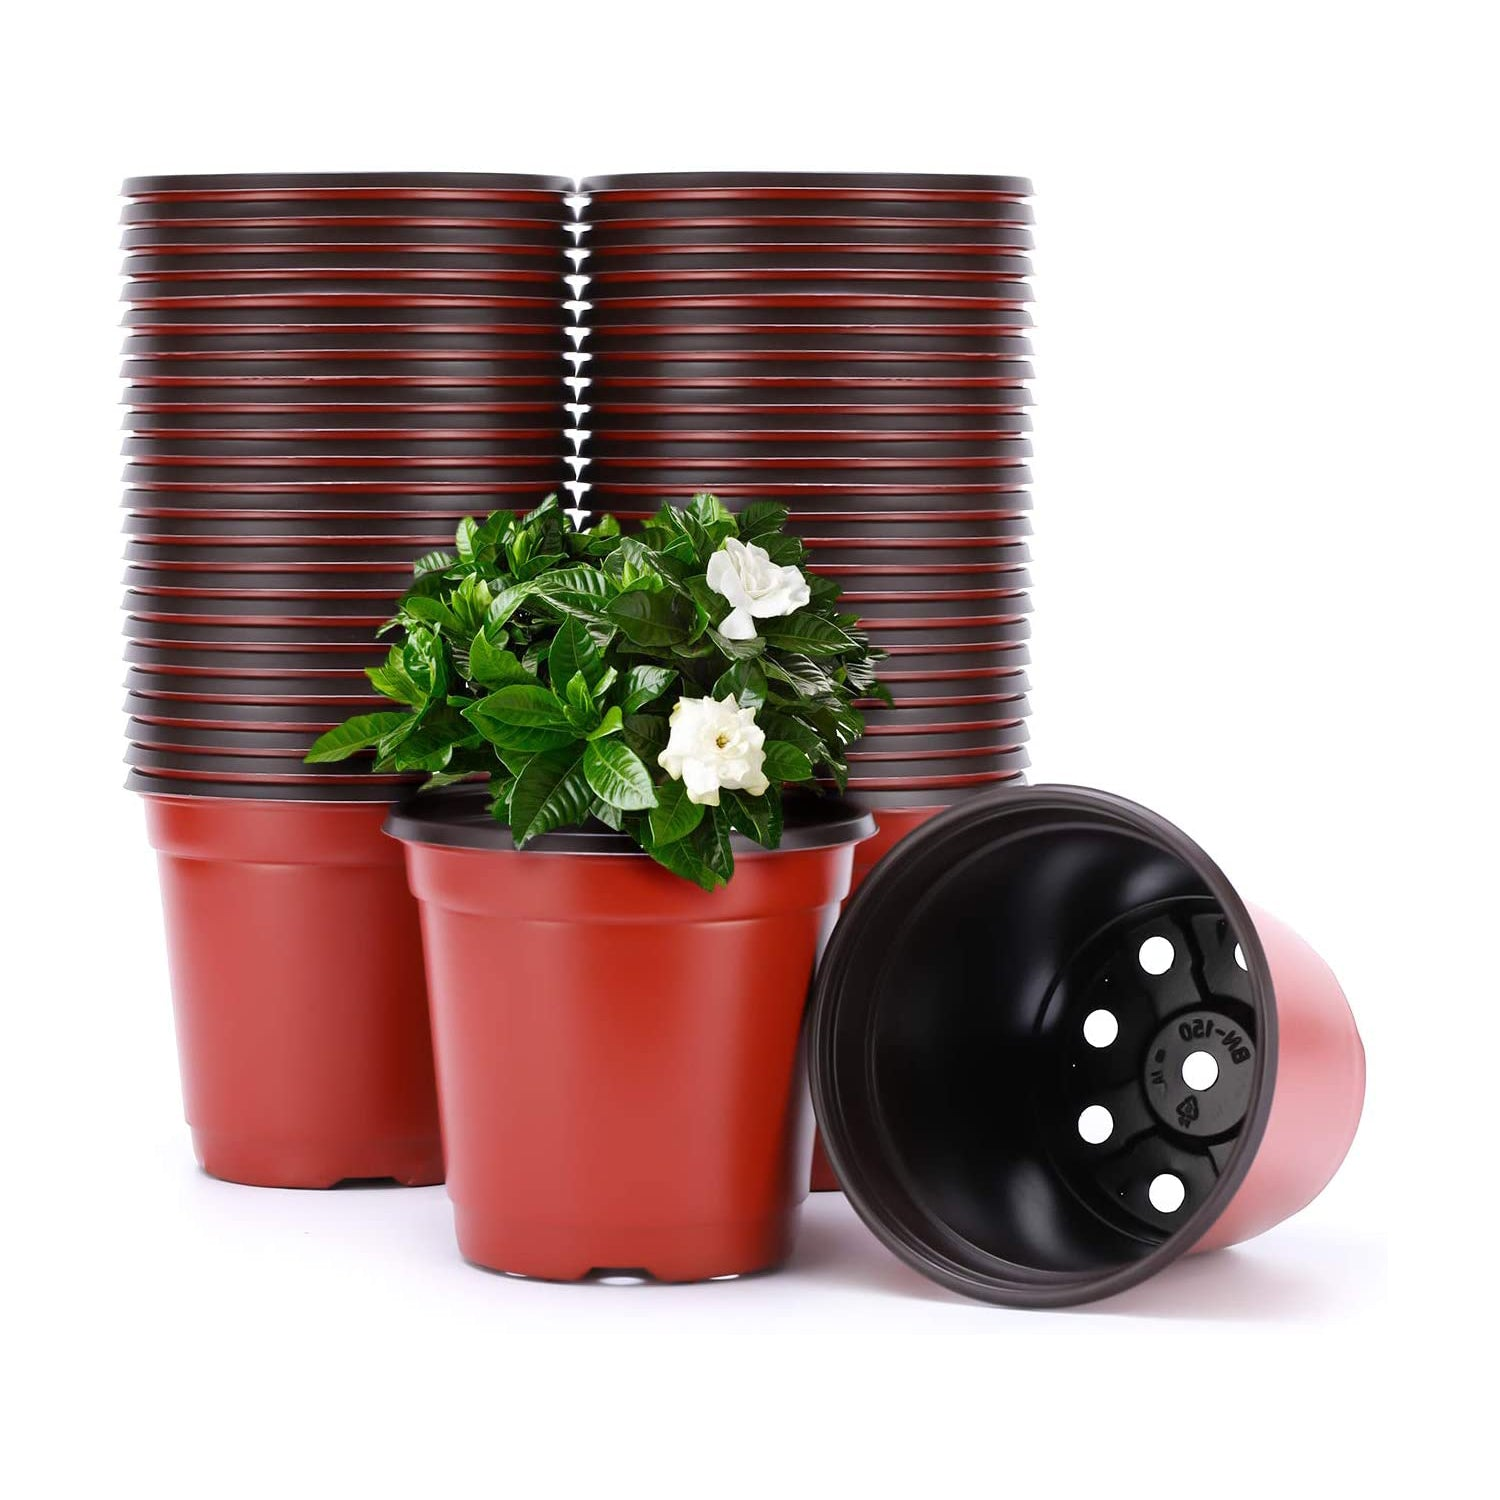 VIVOSUN 100pcs 4 Inch Planter Nursery Pots, Plastic Pots for Flower Seedling - VIVOSUN